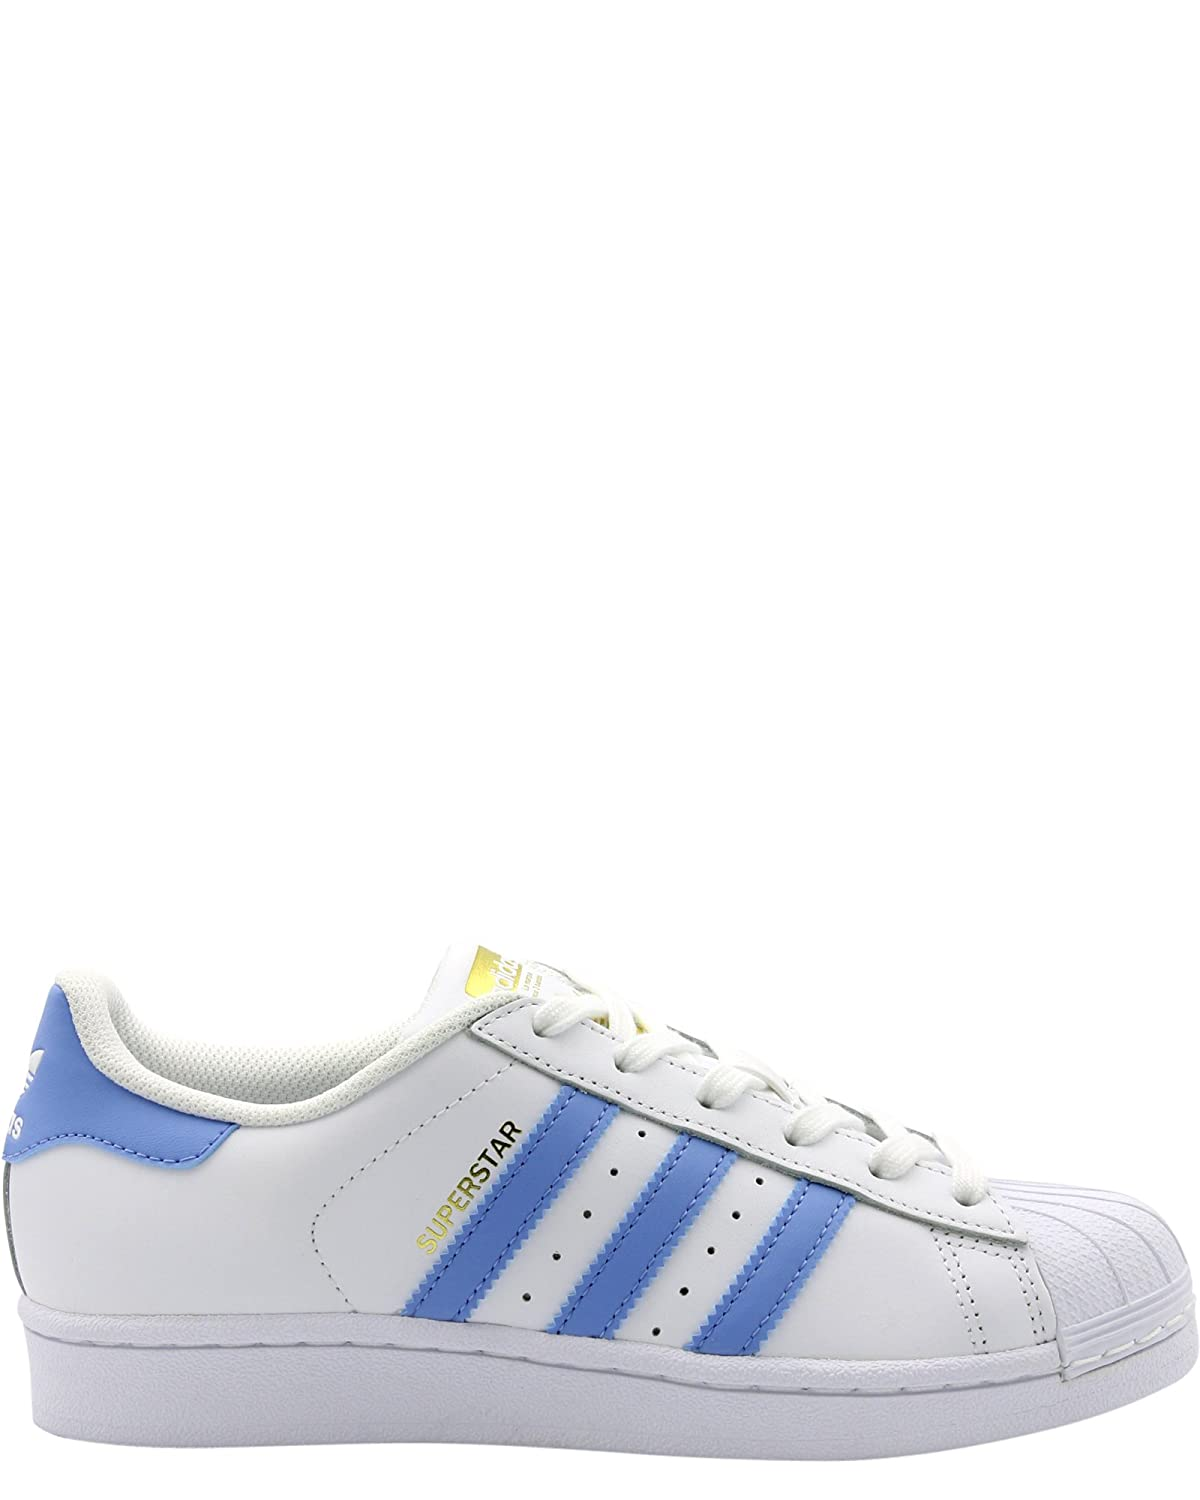 new product e8871 5957a adidas Youth Superstar Foundation White Blue Leather Trainers 4 US